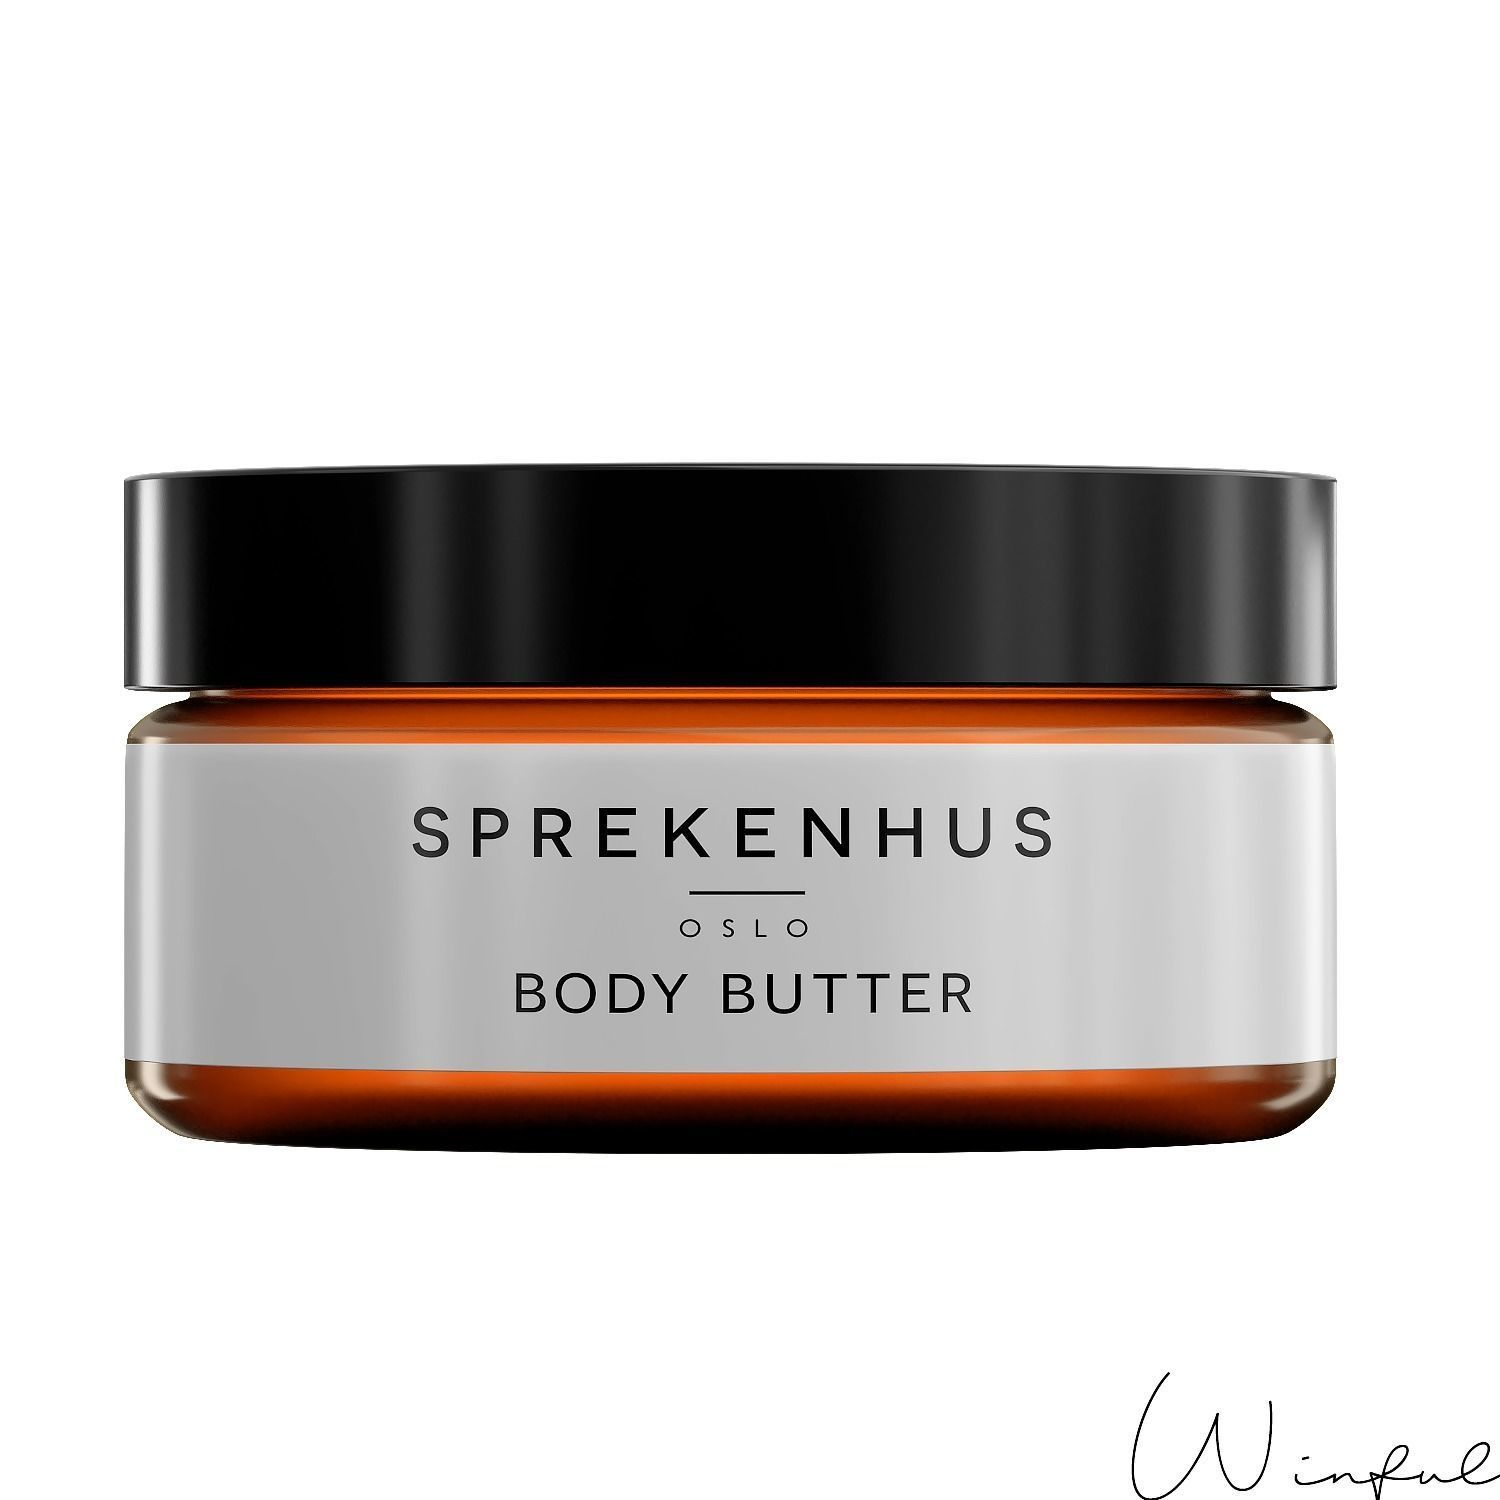 Sprekenhus Body Butter